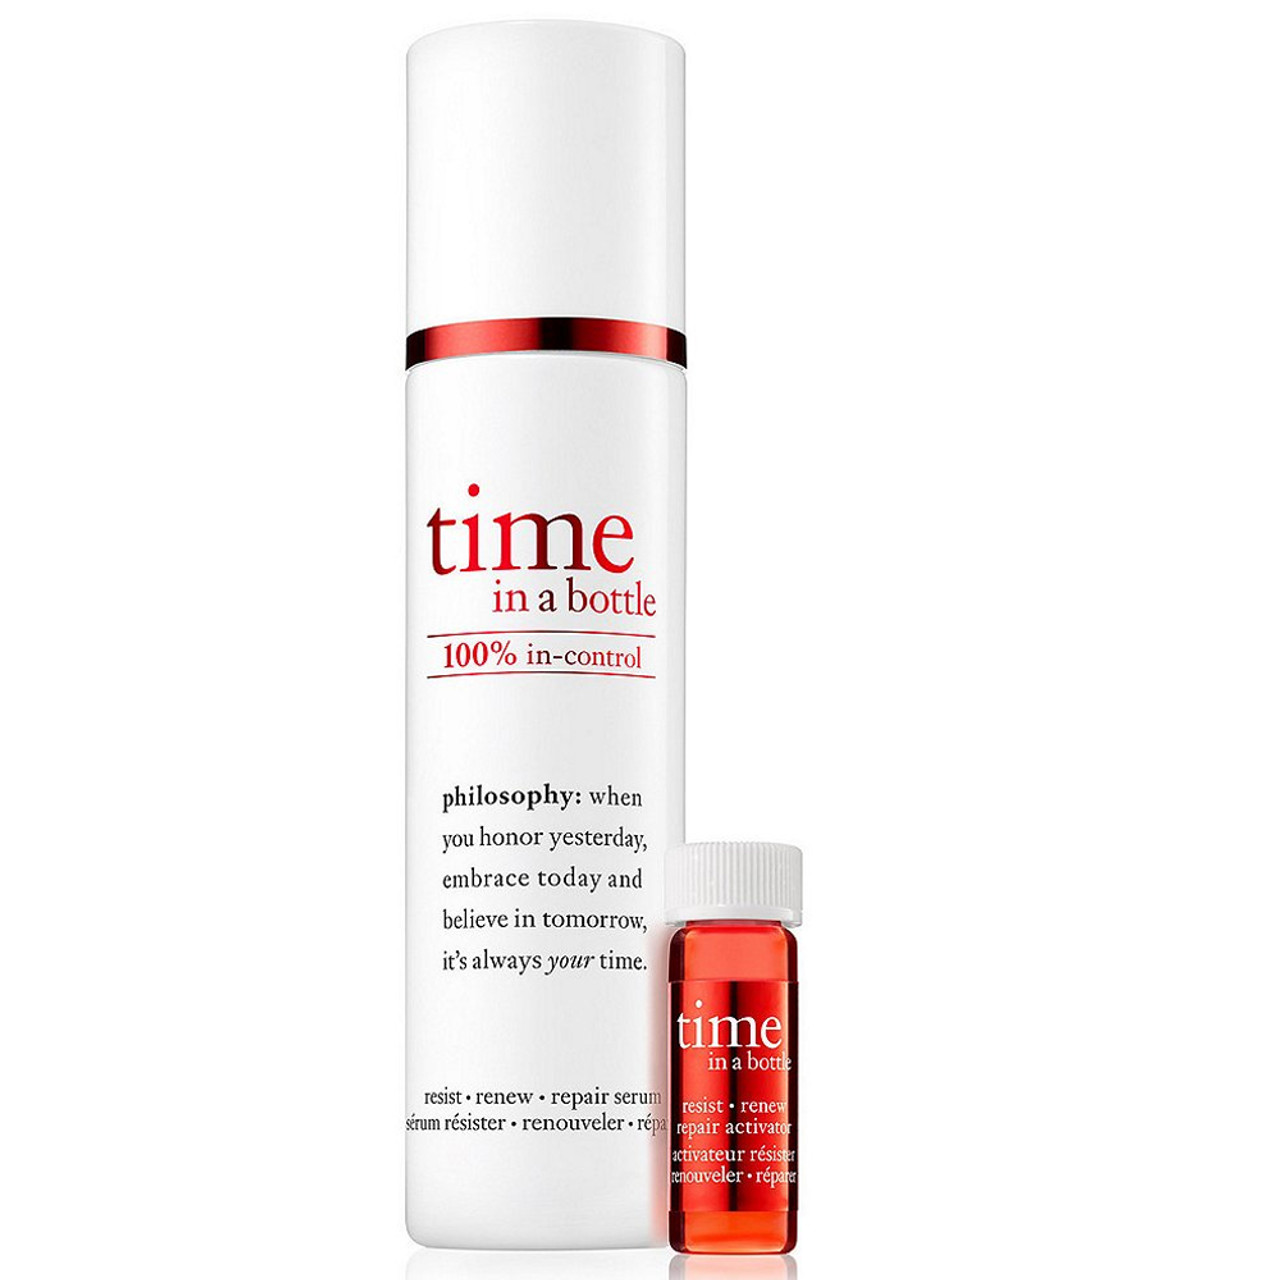 philosophy Time in a Bottle Age-Defying Vitamin C Serum BeautifiedYou.com